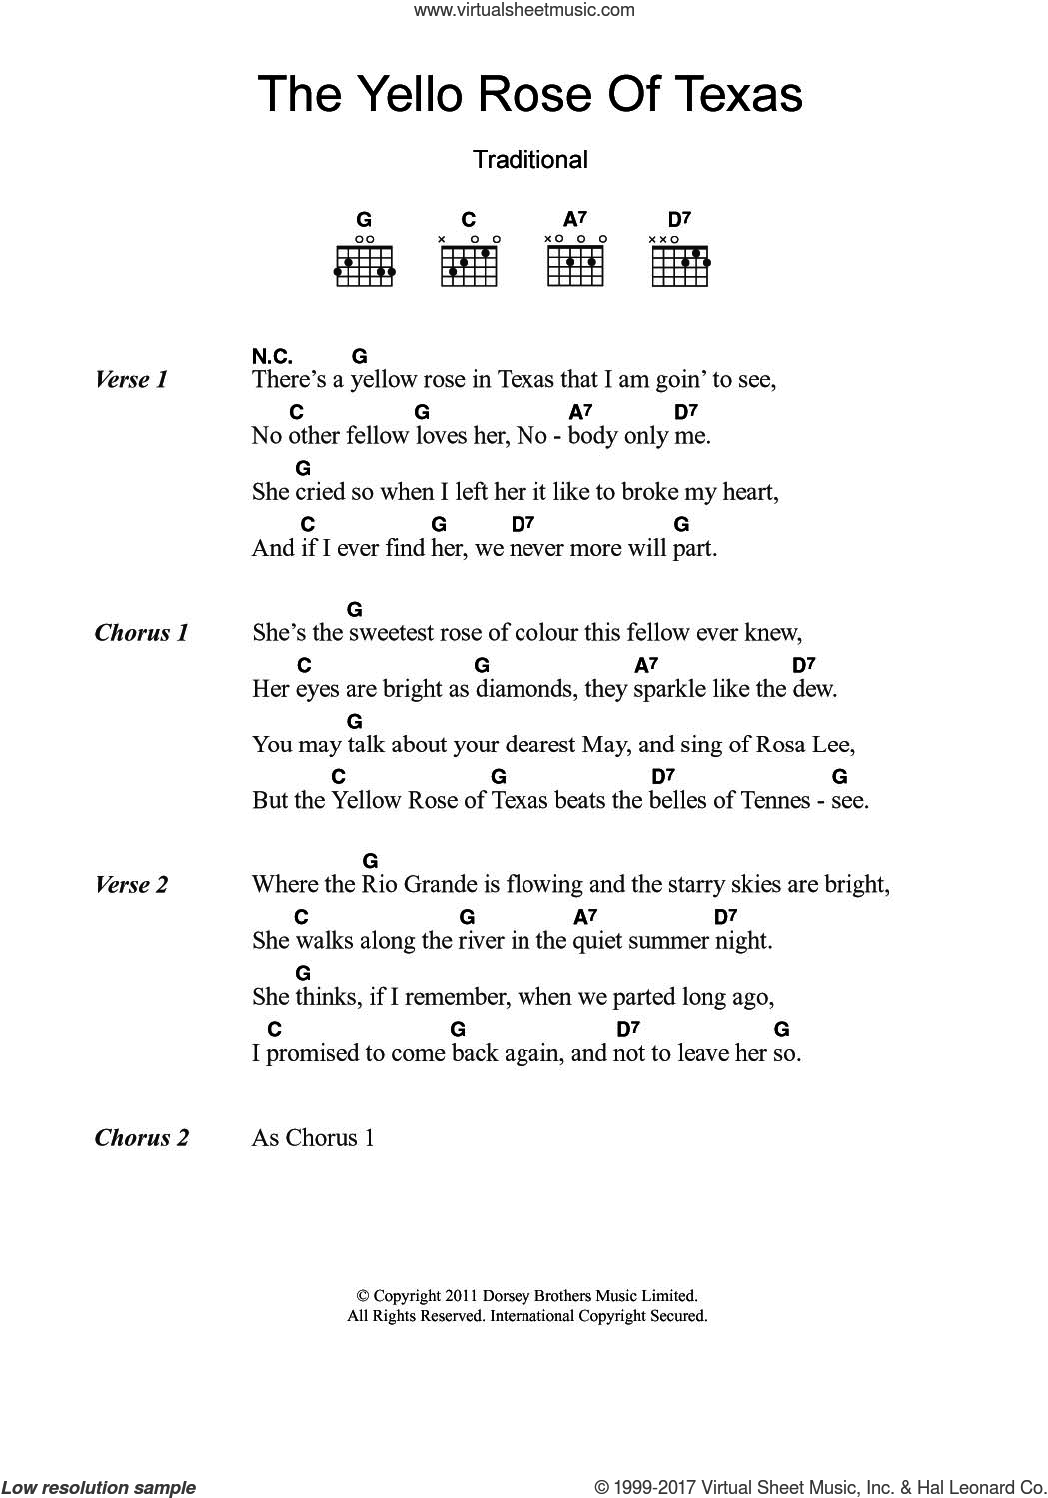 The Yellow Rose Of Texas sheet music for guitar (chords), intermediate skill level